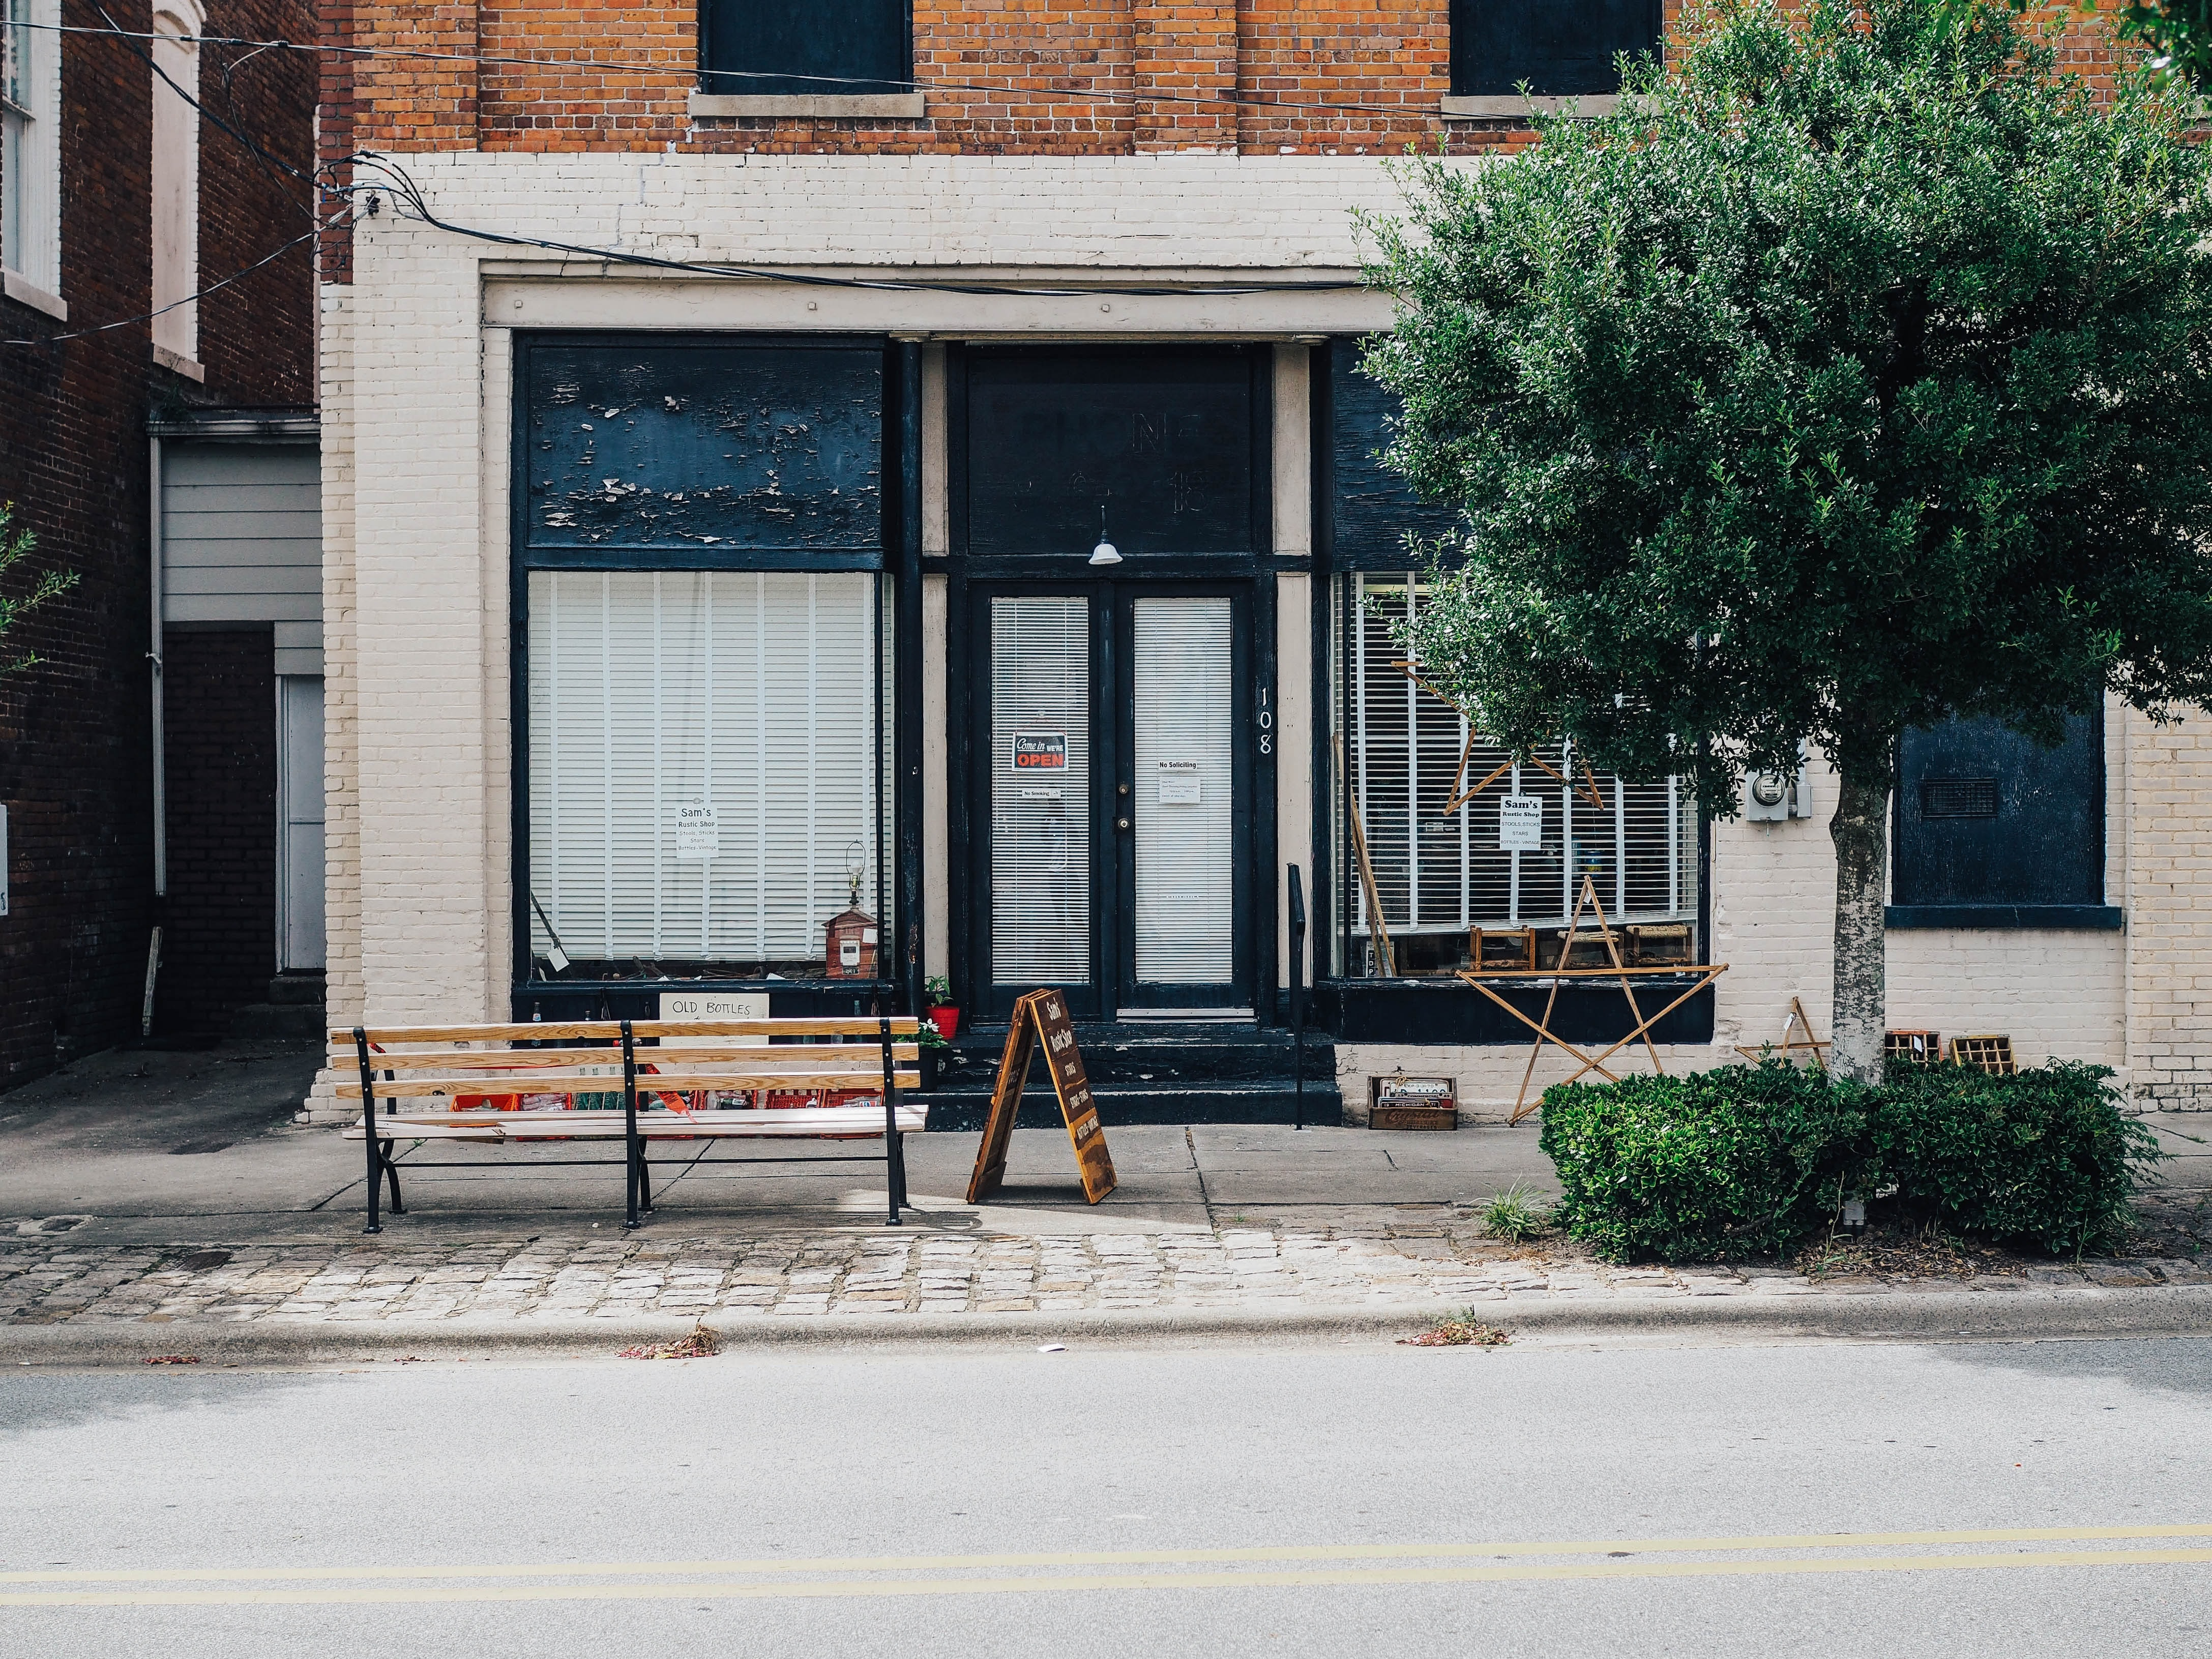 brown wooden bench in front of black store